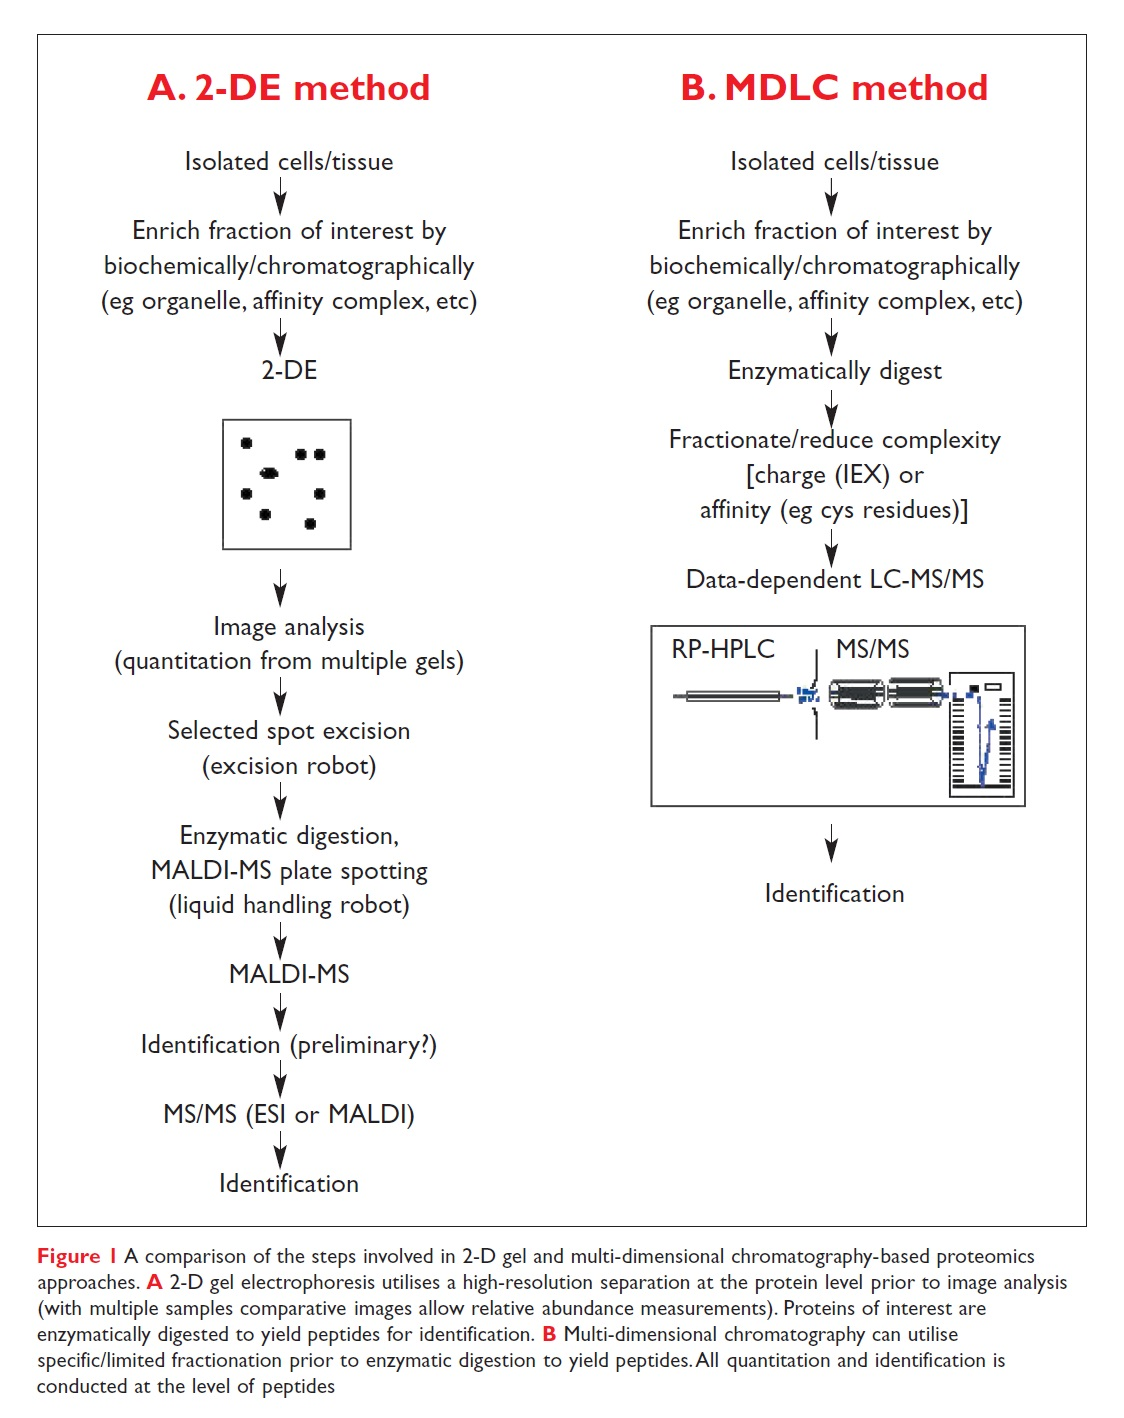 Figure 1 A comparison of the steps involved in 2D gel and multi-dimensional chromatography-based proteomics approaches